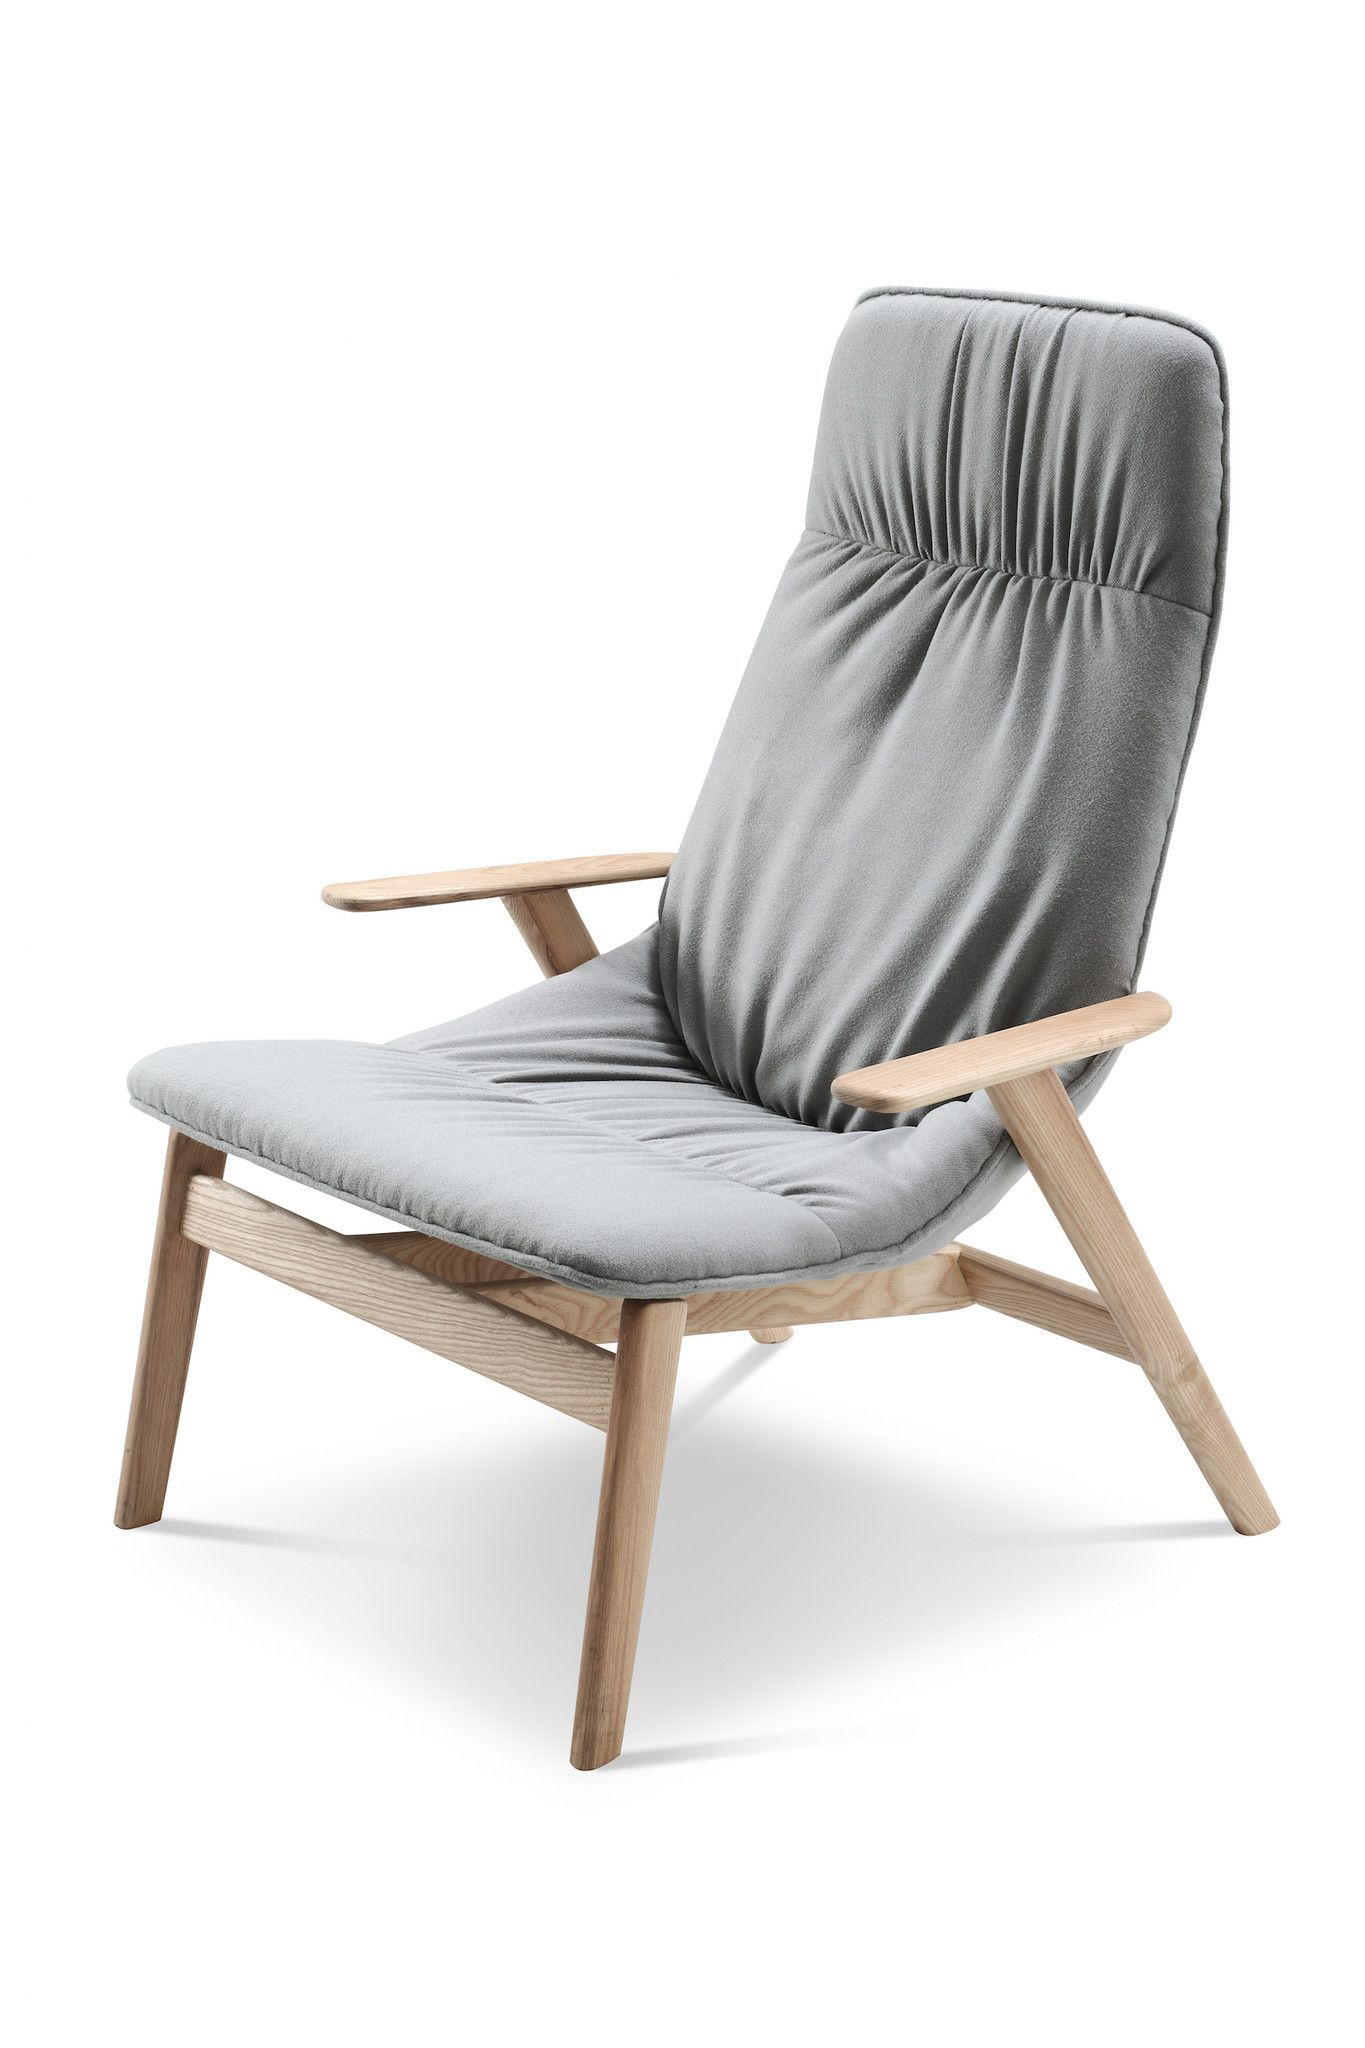 Viccarbe Ace Lounge Chair Reproduction Loungechair Chair